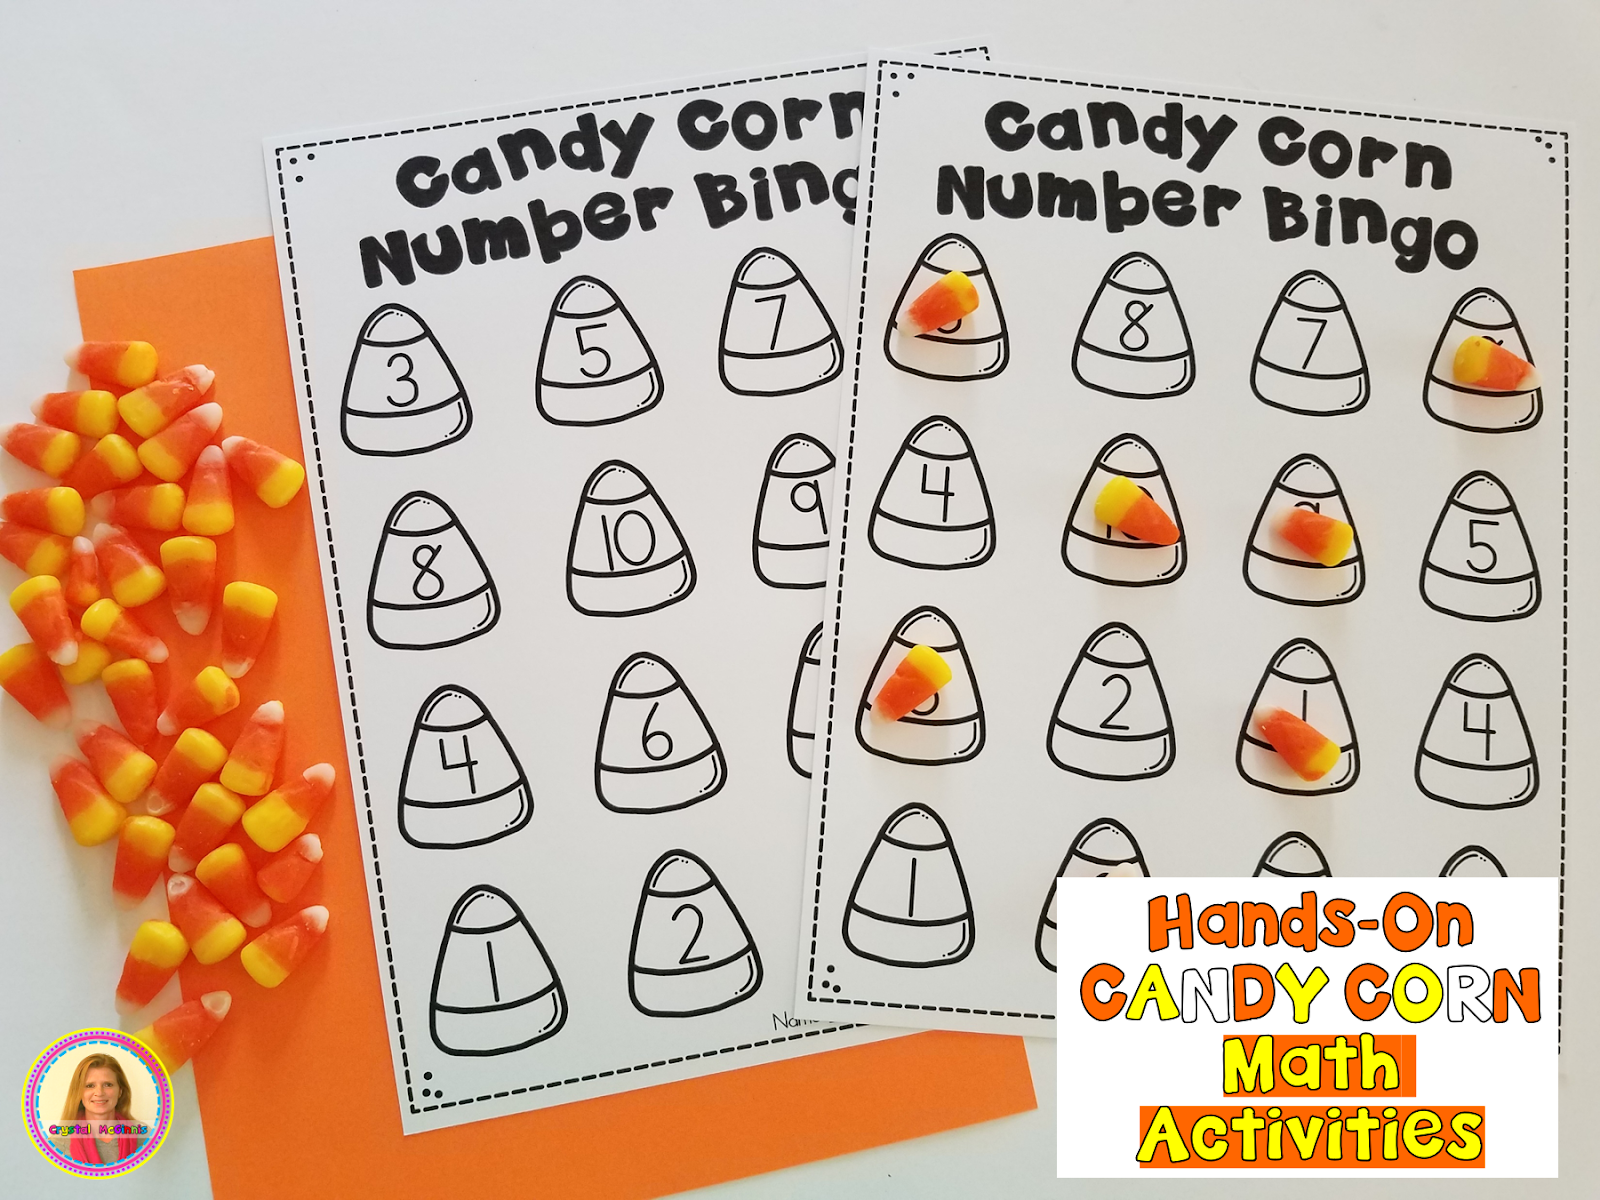 9 Candy Corn Math Activities